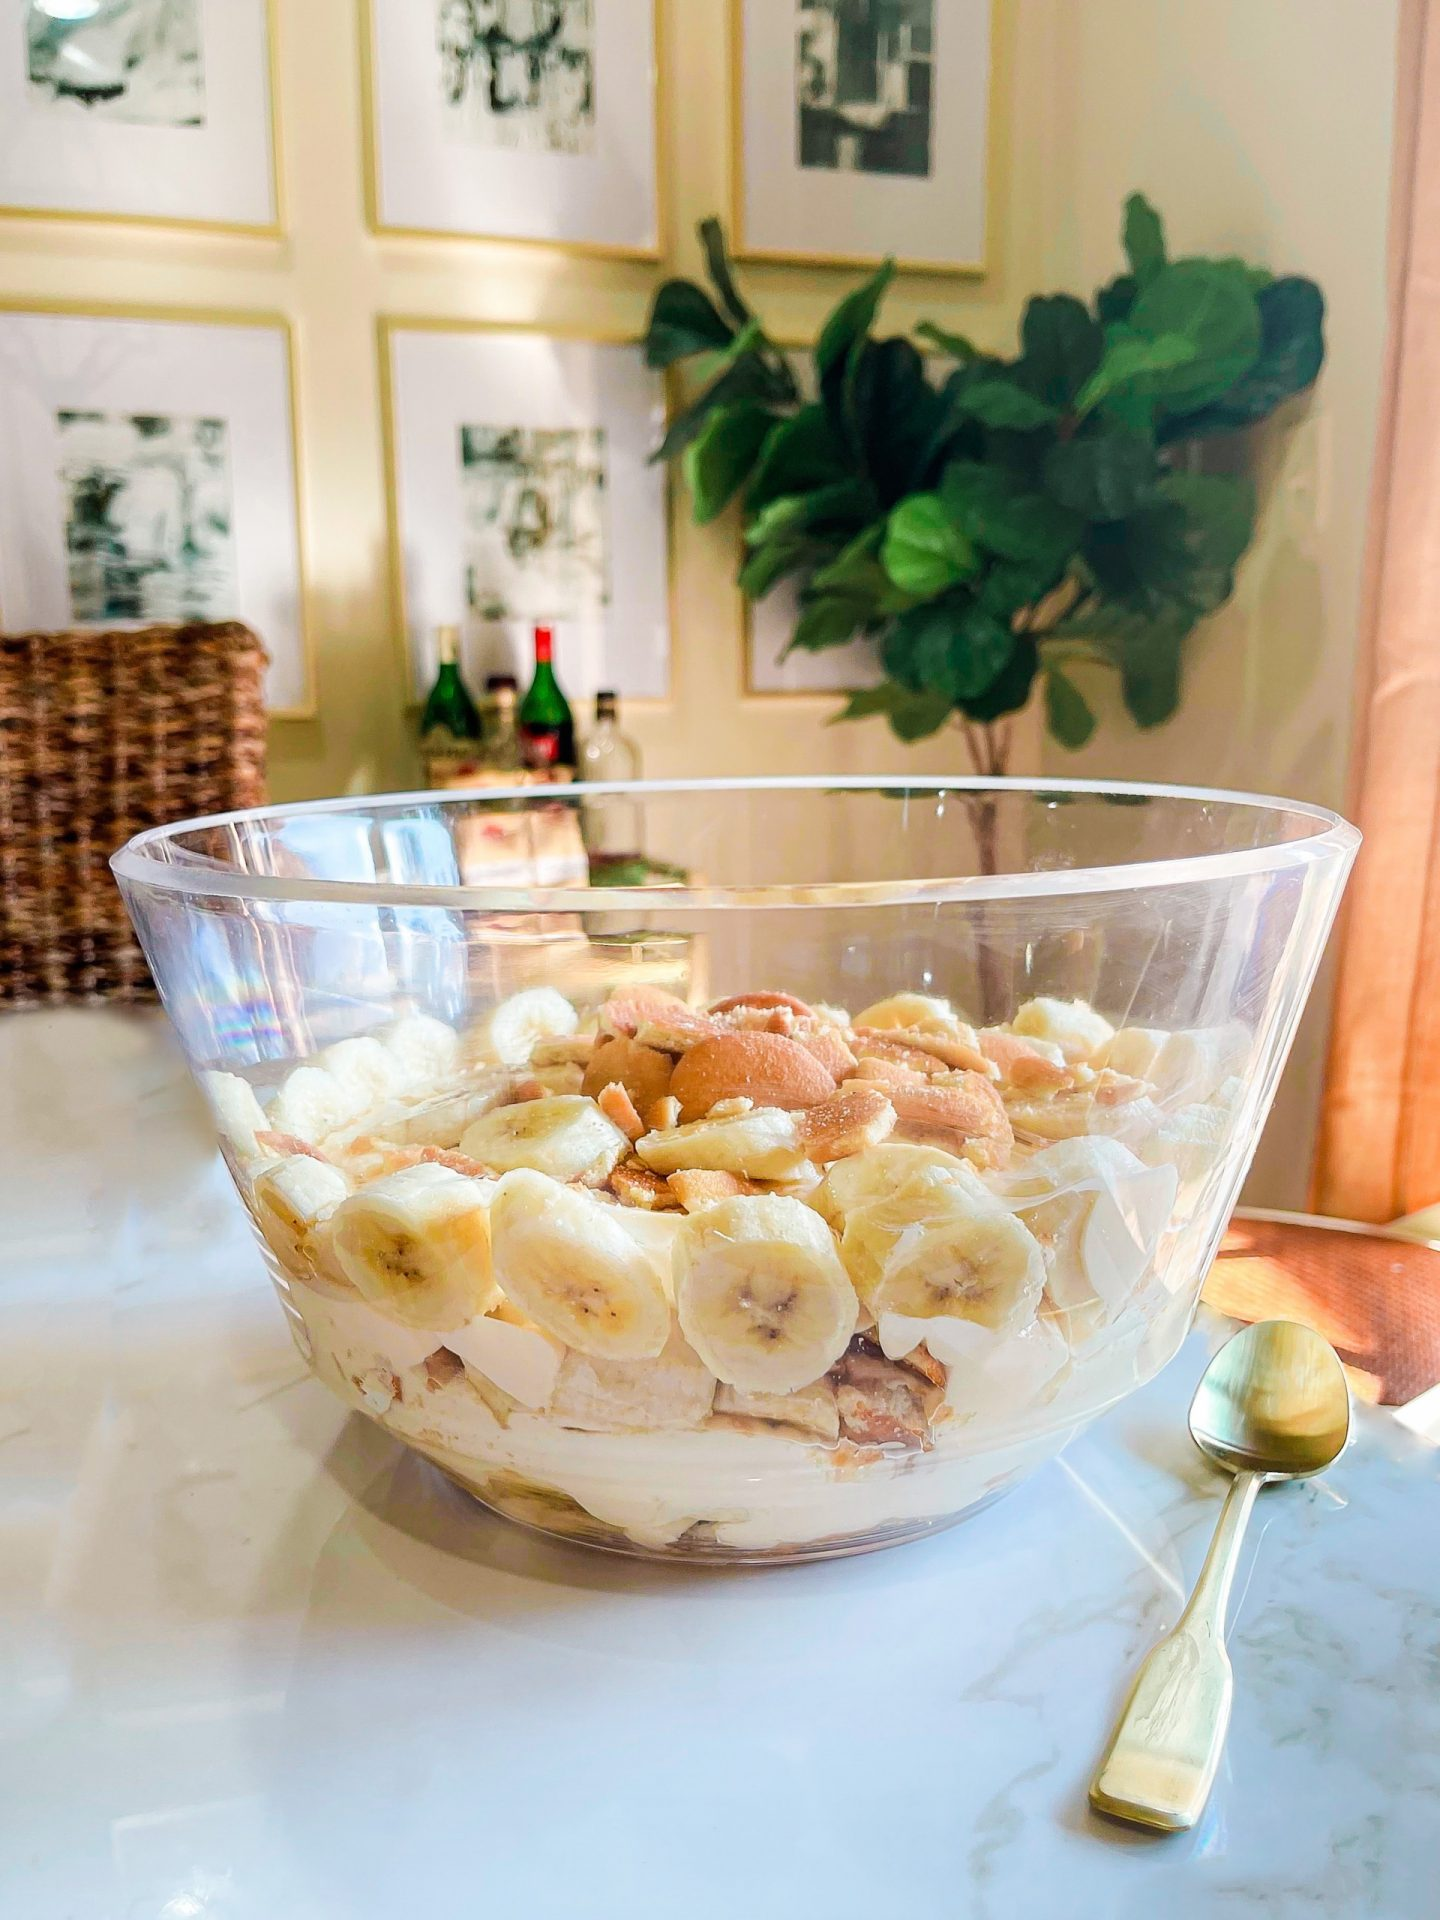 Dreamland BBQ Southern Banana Pudding (Copycat) by Alabama Food + Family blogger, Heather Brown // My Life Well Loved